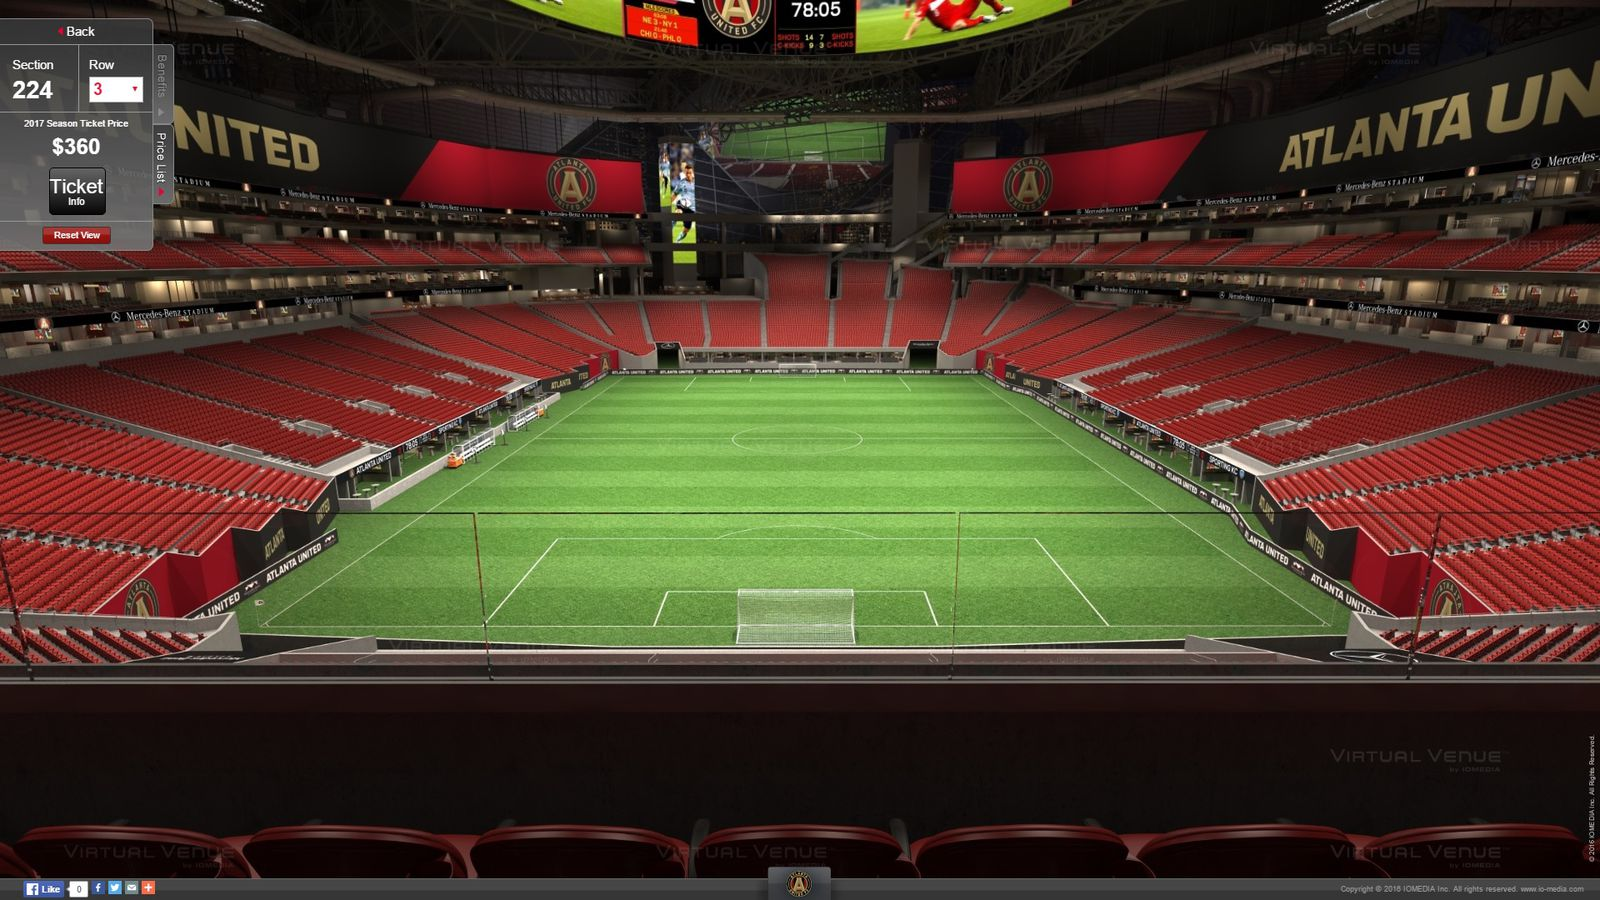 Atlanta United 39 S Virtual Venue Seating For Mercedes Benz